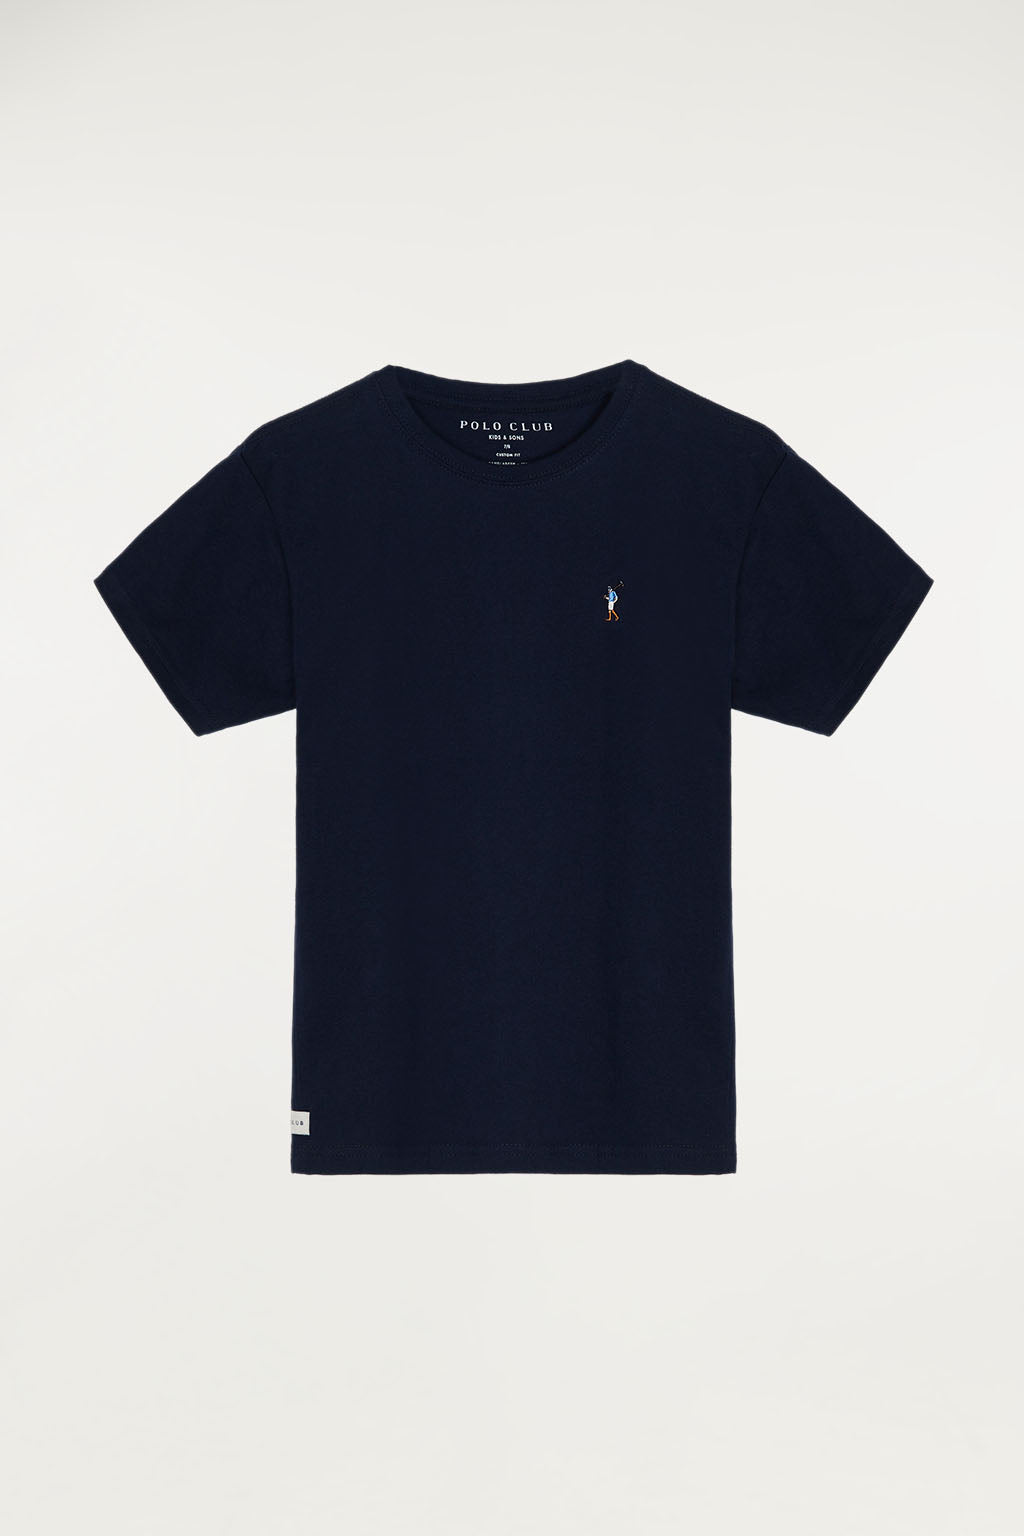 Navy blue tee with small multicoloured embroidered logo